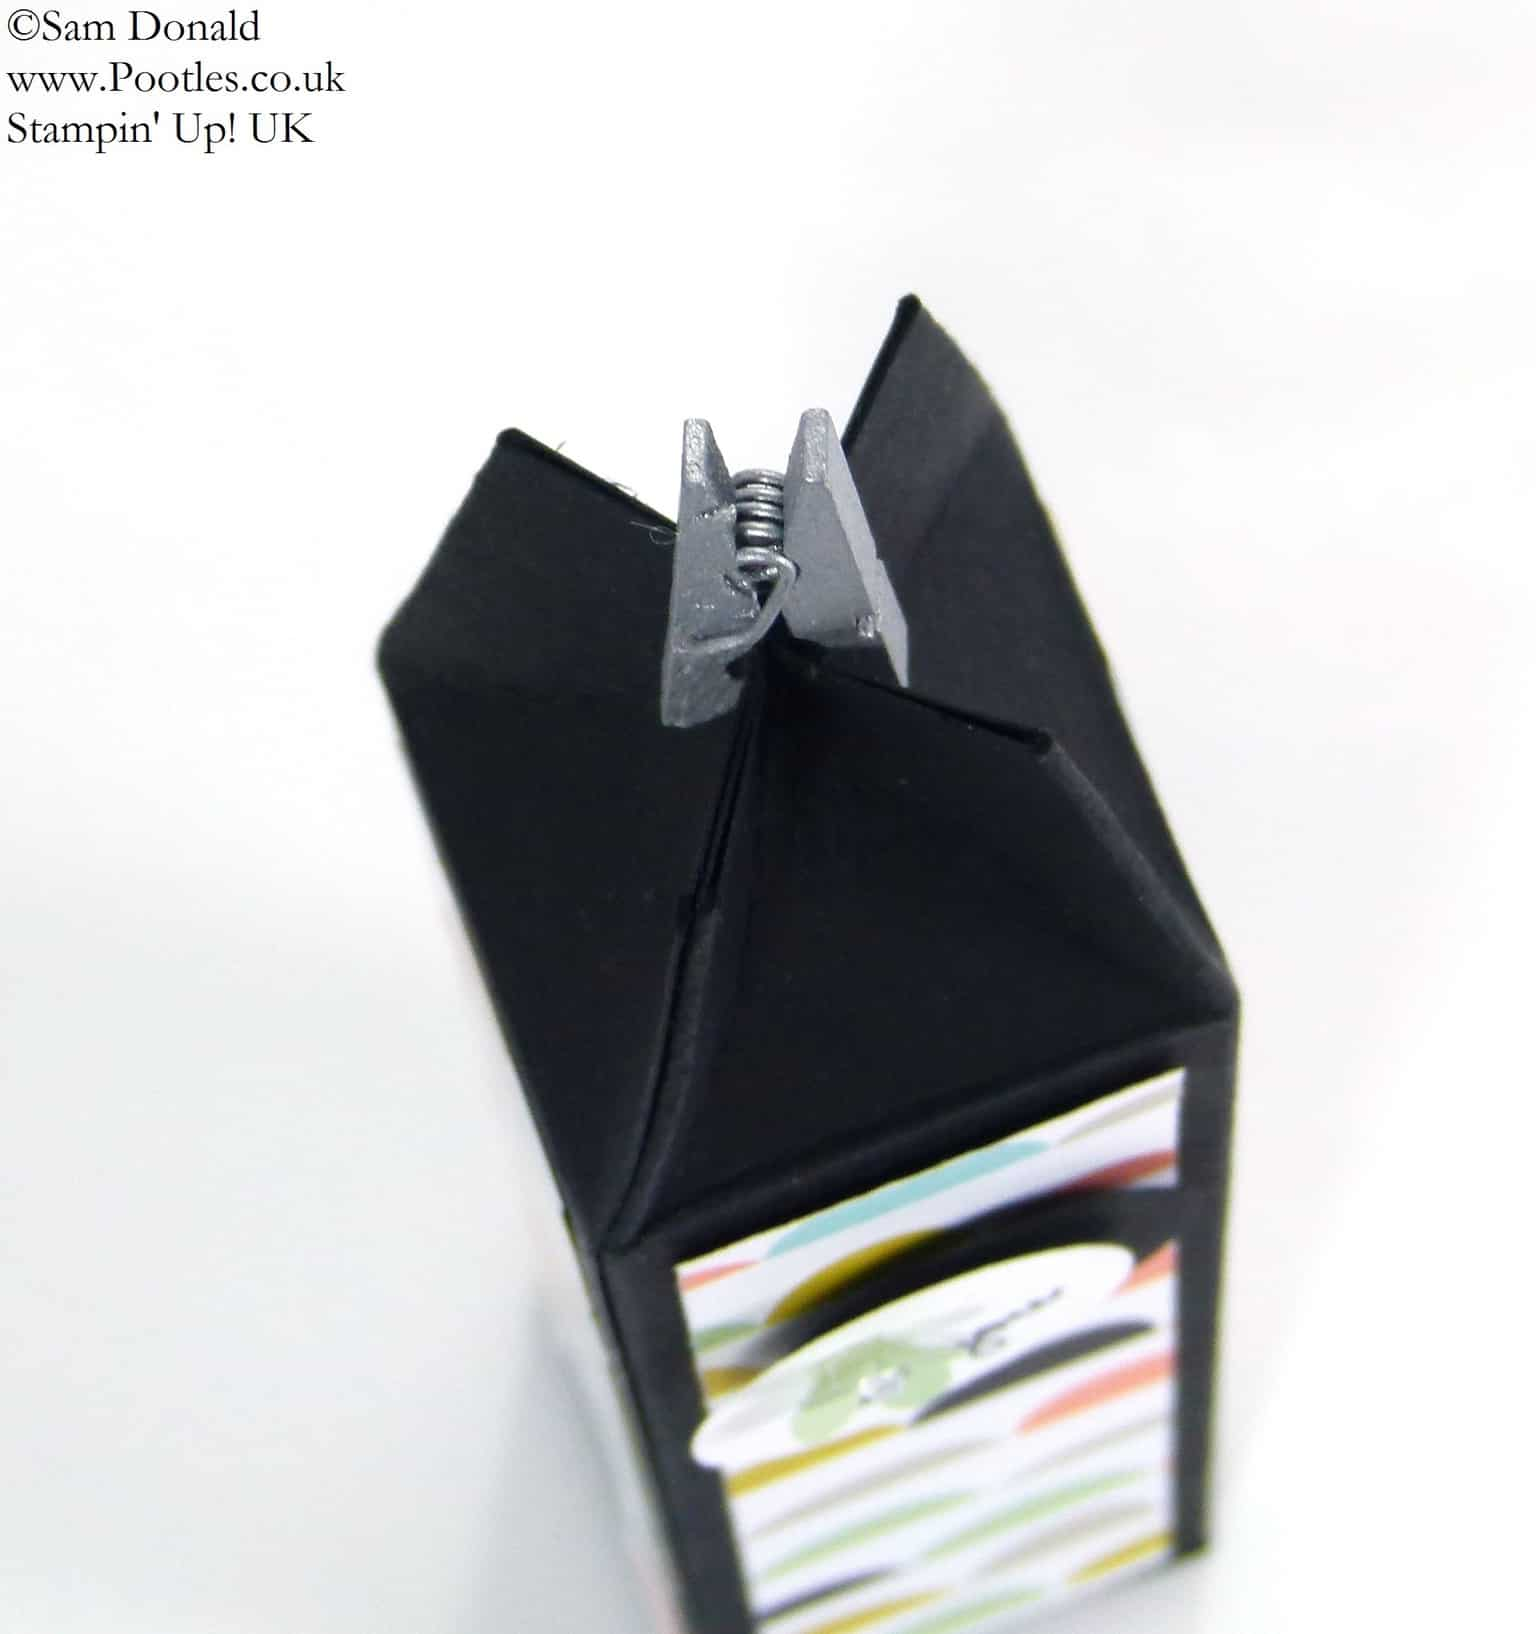 POOTLES Stampin Up UK SPRINGWATCH Tall Skinny Mini Box Tutorial